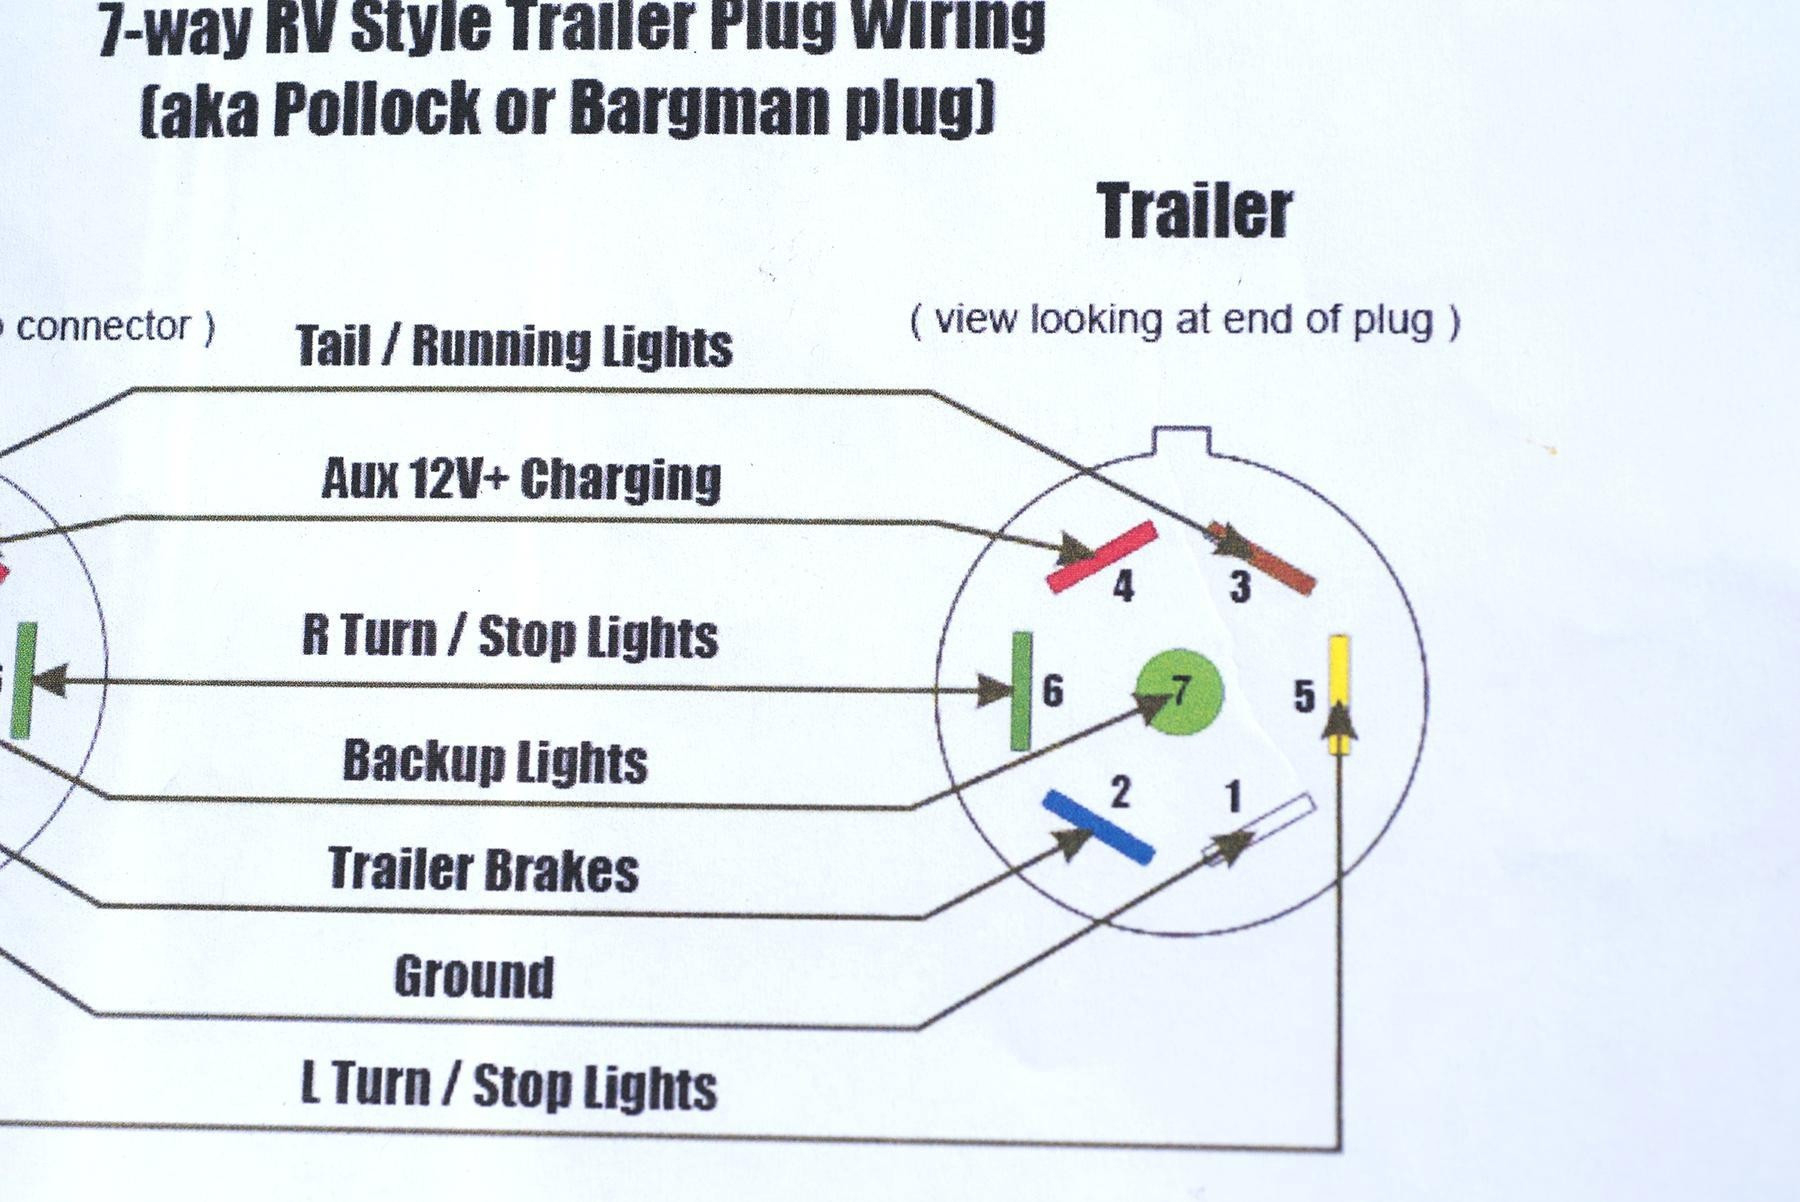 2015 Dodge Ram 7 Pin Trailer Wiring Diagram | Wiring Diagram - Dodge Ram 7 Pin Trailer Wiring Diagram